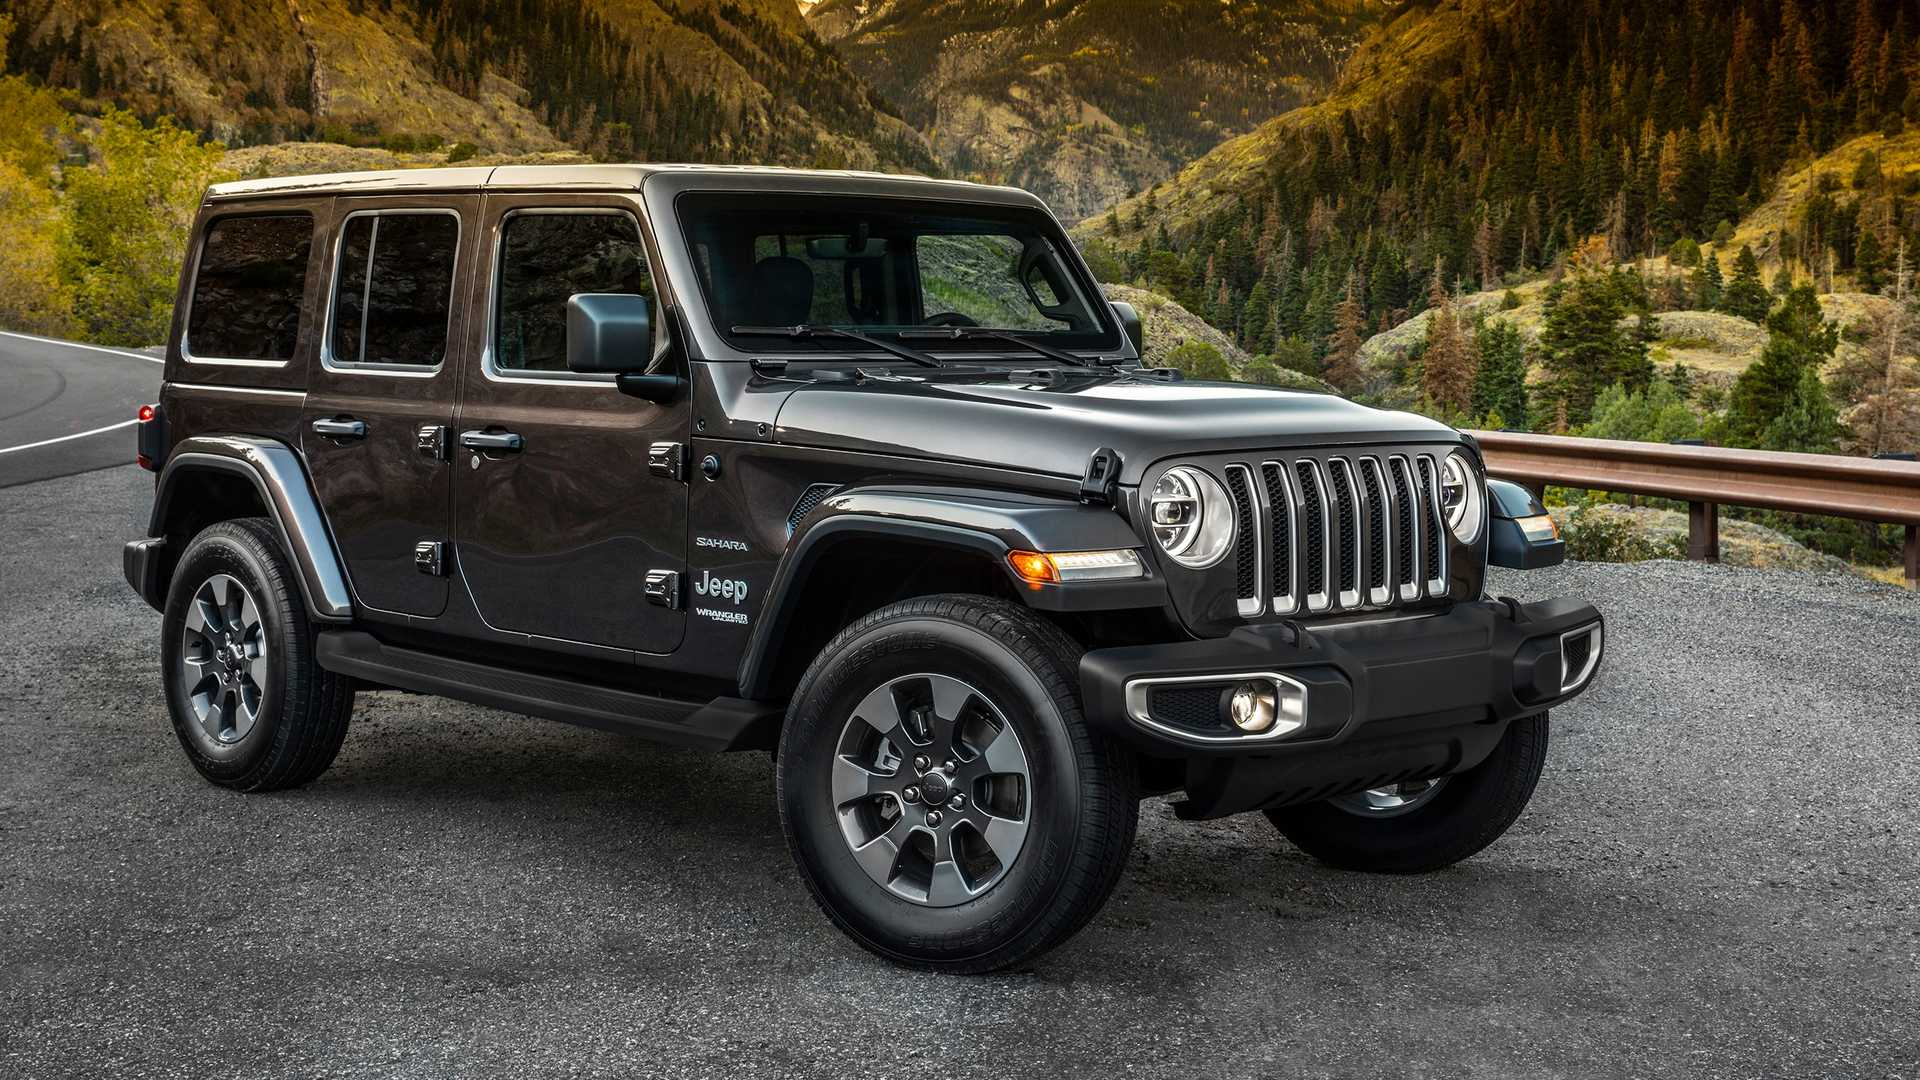 The Wrangler Jeep 2020 is going to be an off-road icon in the United States. This is something outclass that is designed extraordinarily as the best driving option. Wrangler Jeep has been arranged with a kit that puts a four-sleeper pop-up camper on the back. Moreover, the jeep also has an added 50 percent room for cargo. The sleek and exquisite design of the car is something gaining attention from the customers. The jeep comes with an addition of 38cm of length and a pop-up roof with a built-in bed. The pop-top also opens with the standing room-height inside whereas a counter with a built-in sink/basin provides space for indoor cooking. Isn't it fascinating? Well...here we have everything you want to know about Wrangler Jeep 2020. Wrangler Jeep 2020 - Here Is Everything You Want! Wrangler Jeep 2020 is about a whole new experience as it has everything you can think of. The extra length of the jeep expands cargo capacity and is also available with cabinets and cubbies by which you can take full advantage. Moreover, it is accompanied by the folding-panel roof bed sleeps two, and also the lower-level bed sleeps. Wrangler Jeep 2020 Exterior Details It's time to stop your search for a complete car in the form of Wrangler Jeep 2020. The exterior of this car is lavishly designed that captures one's attention in a single glance. The JXL is also available with a convertible dinette set by means of the benches and a dining table. The dining table can be removed for the sake of using it outdoors, and the benches include under-seat storage. You can now plan your adventures at the best with all the facilities that will make it a comfortable journey for you. Red River is also offering the jeep with a pull-out toilet and a shower option to complete the full motorhome layout of beds/kitchen/dining room/bathroom. It's installed with the canvas storage hangers that hold utensils, tools, cookware, and other camping equipment and accessories just as against the interior walls. Now take